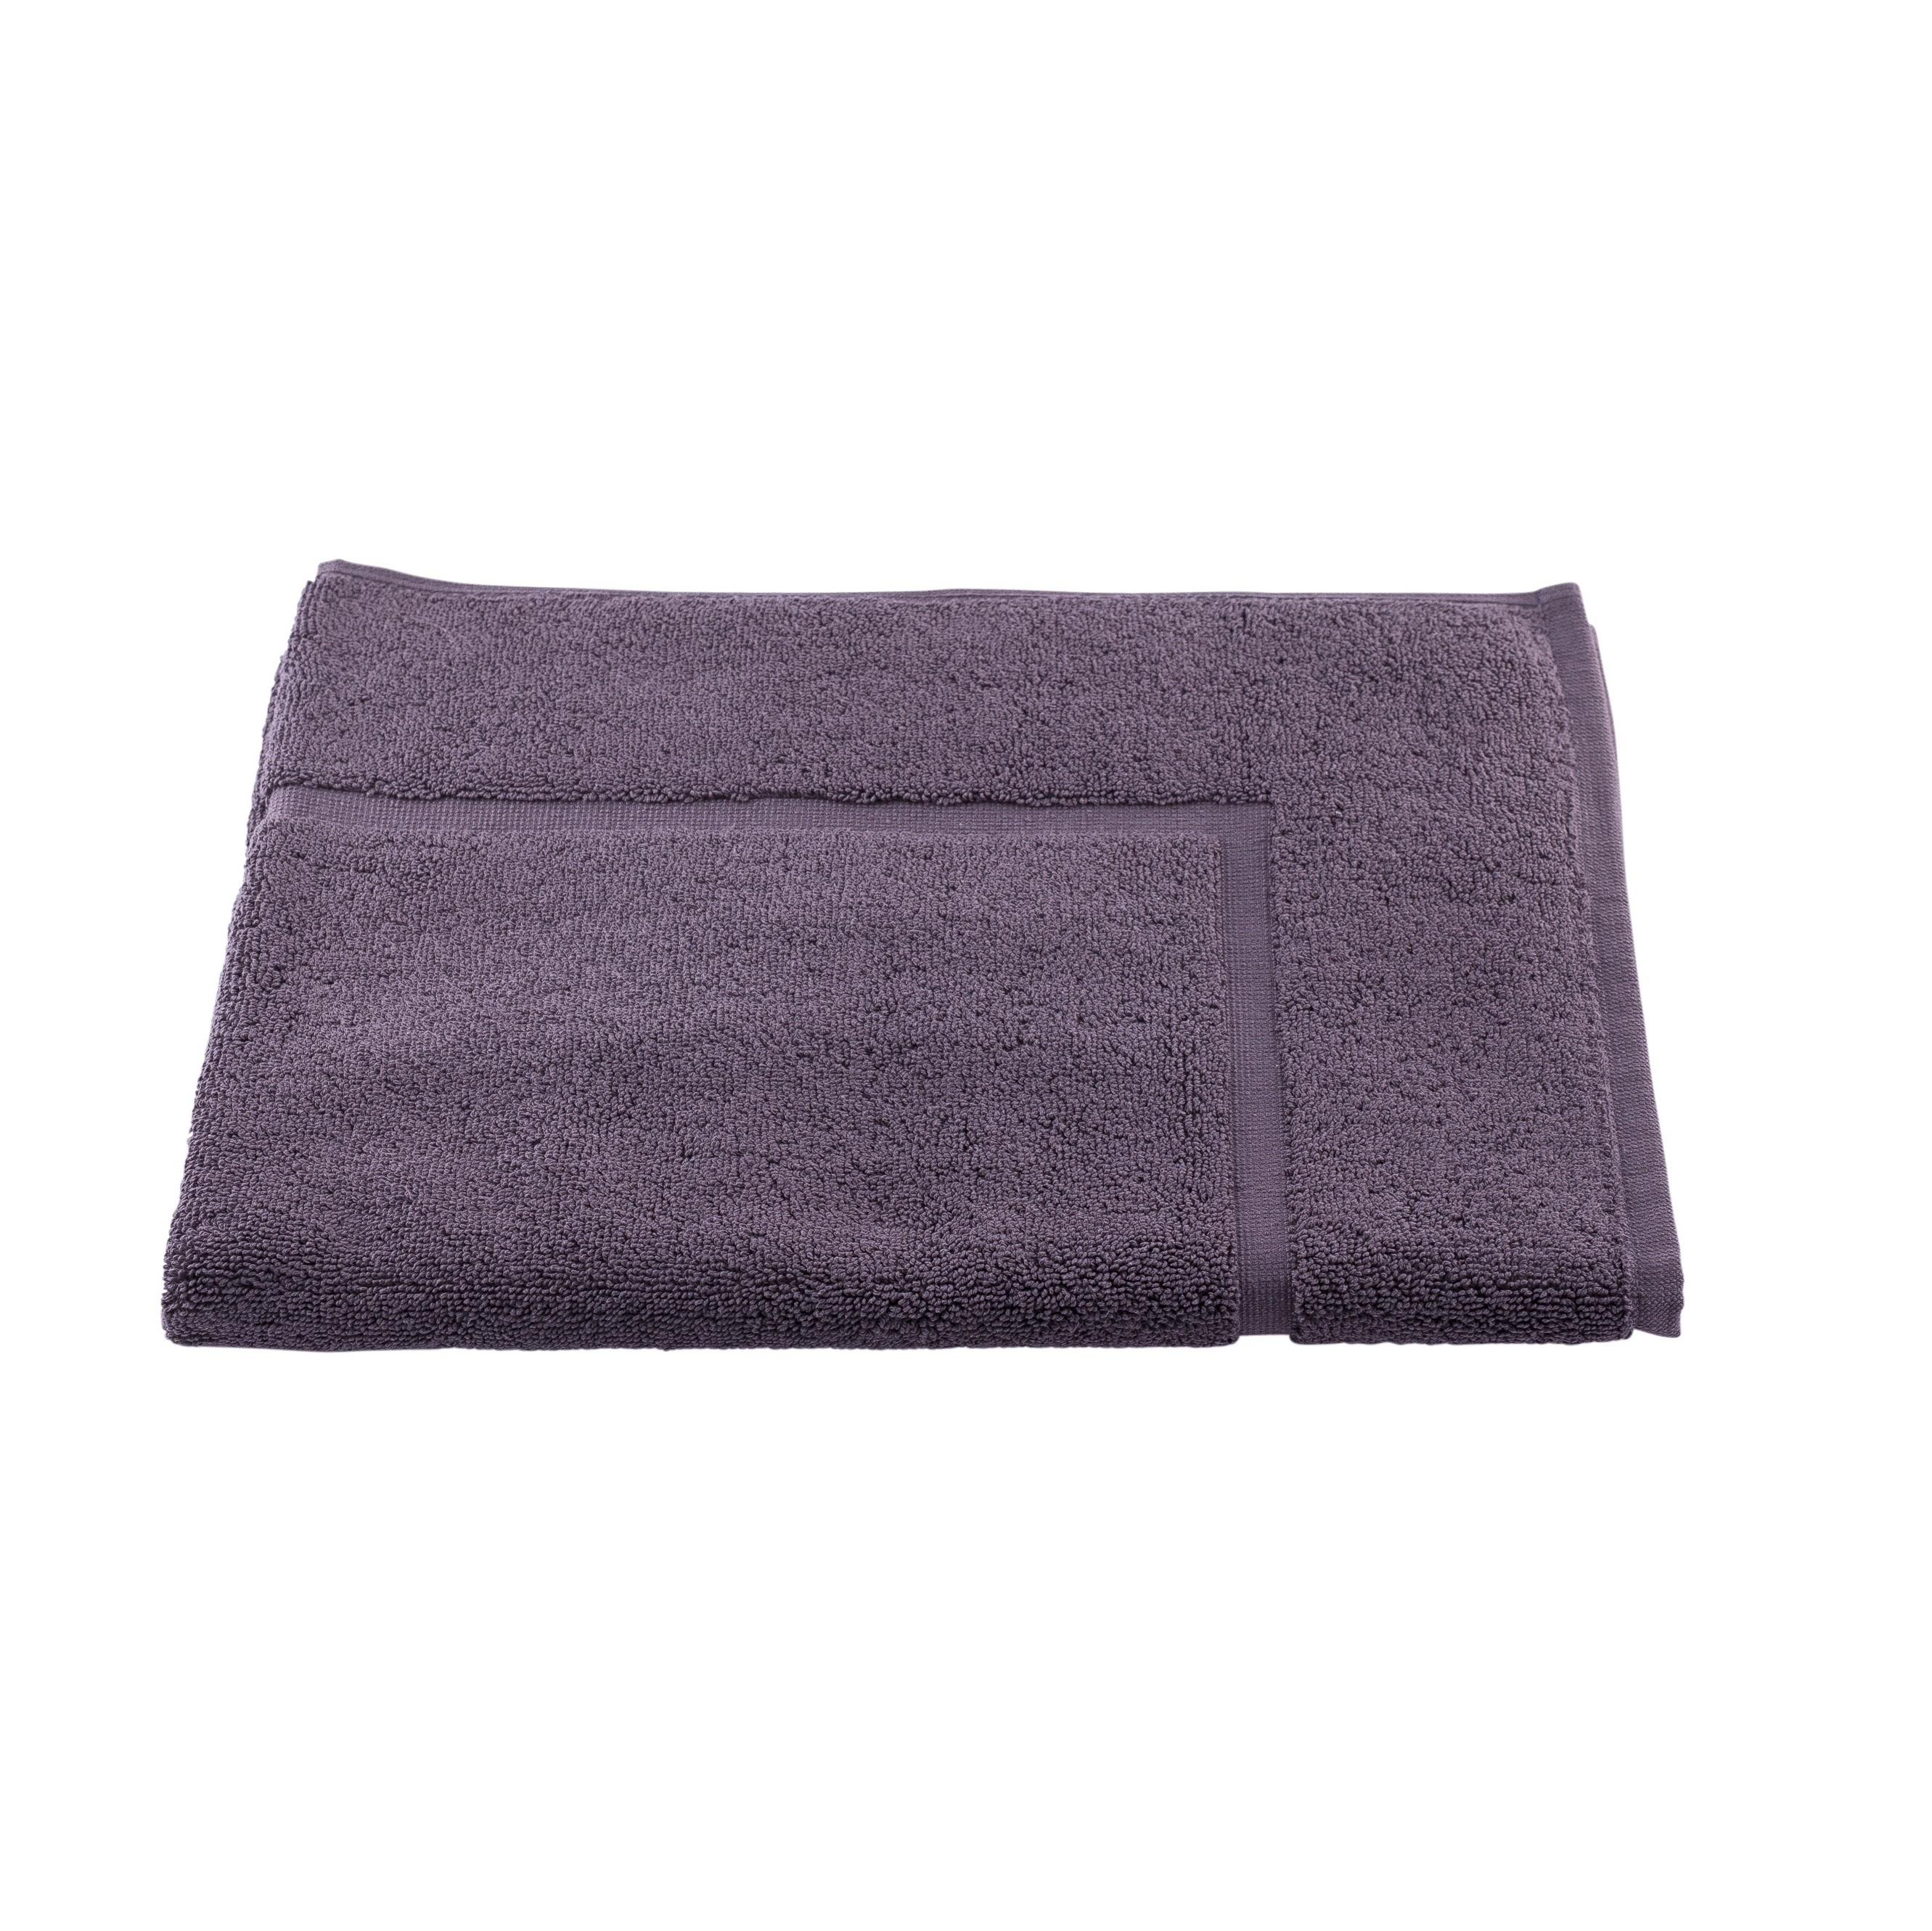 bath mat ultra charcoal